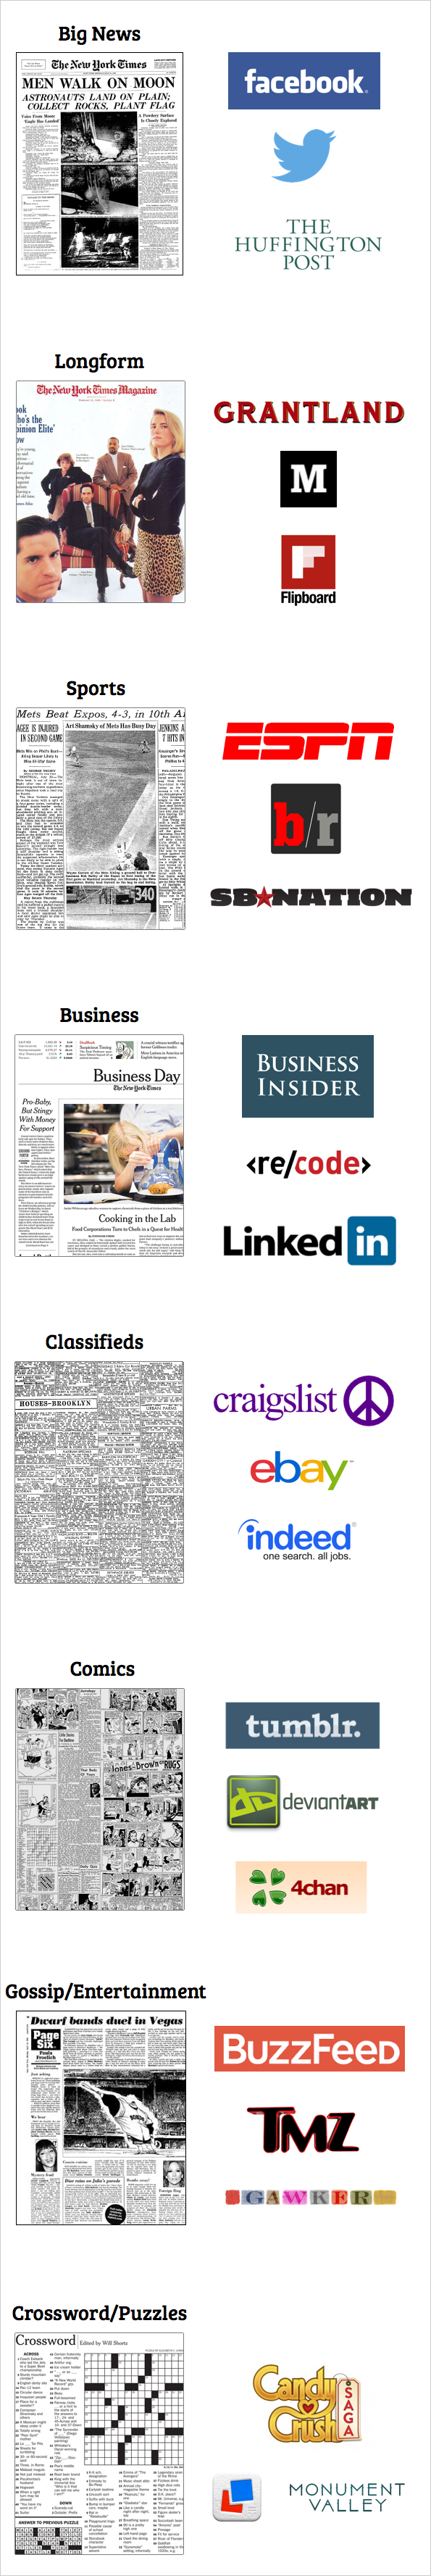 Unbundling of The New York Times